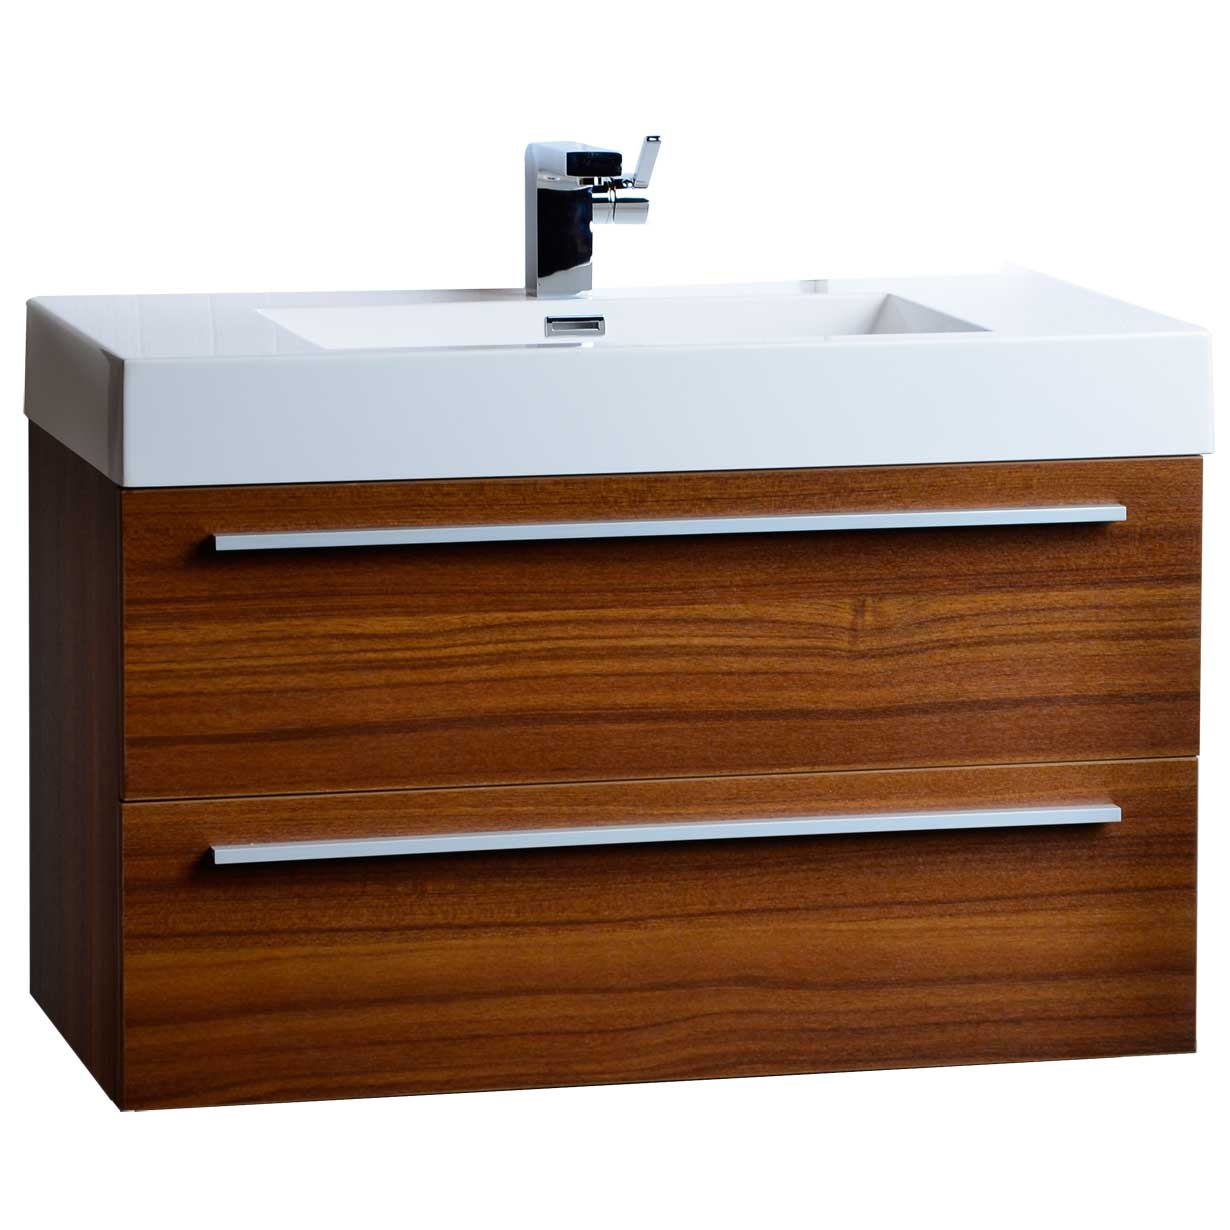 35 5 wall mount contemporary bathroom vanity teak tn m900 tk